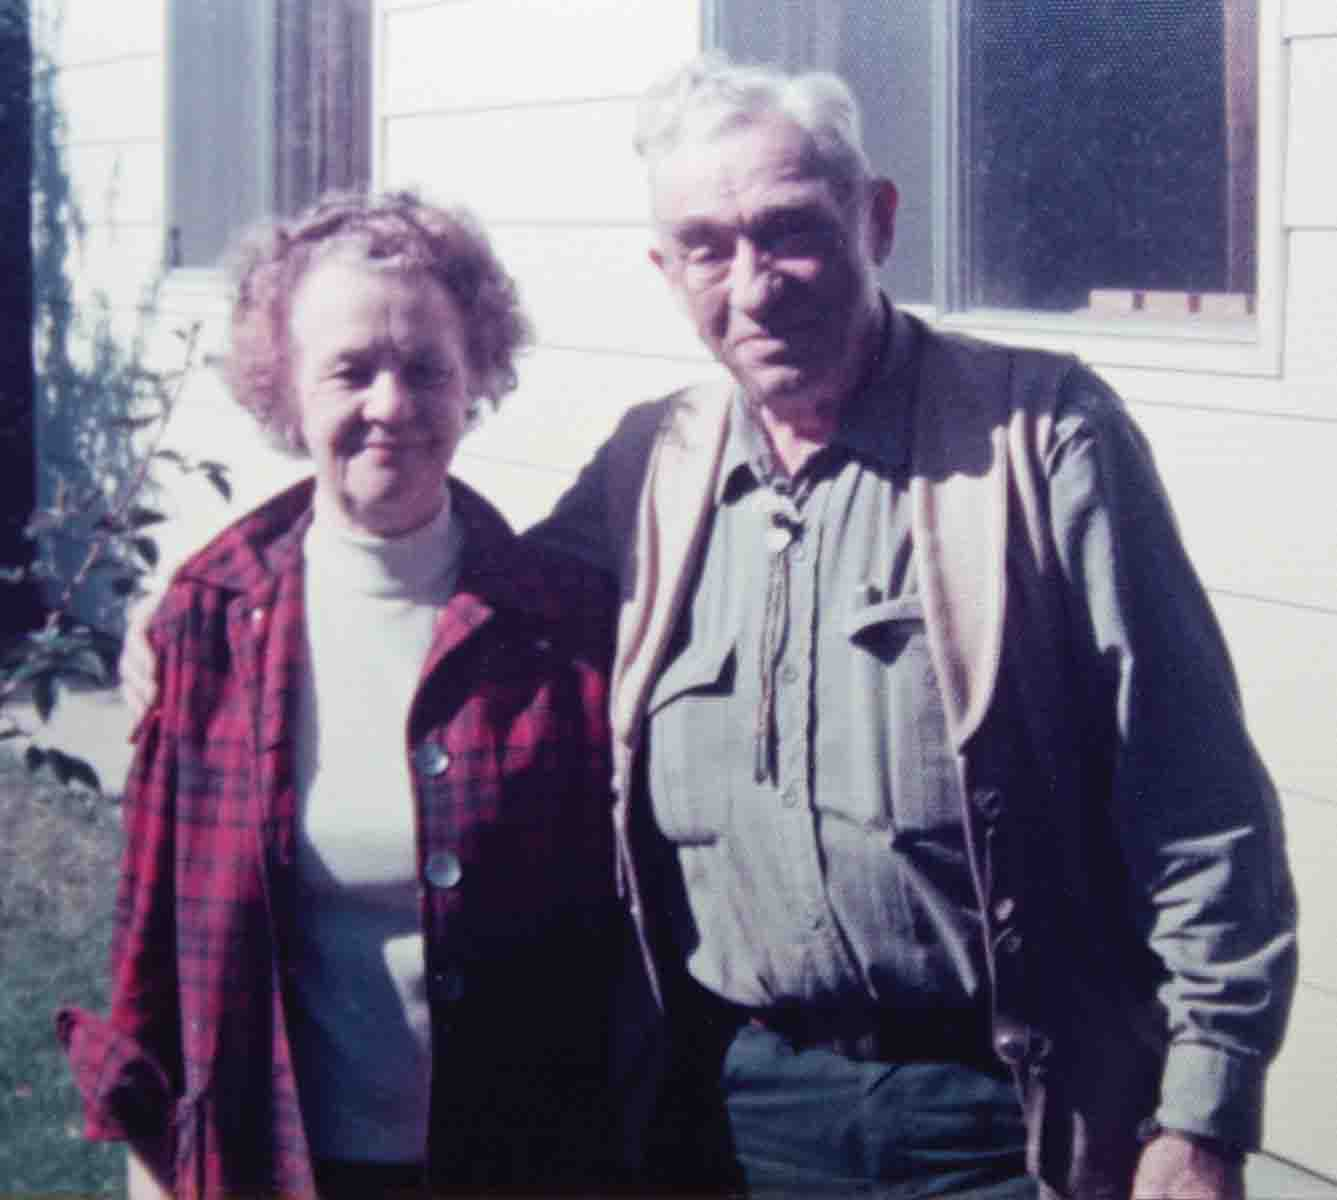 Elmer Keith and his wife Lorraine posed for this photo in 1975, during Harvey's first visit to their home in Salmon, Idaho.